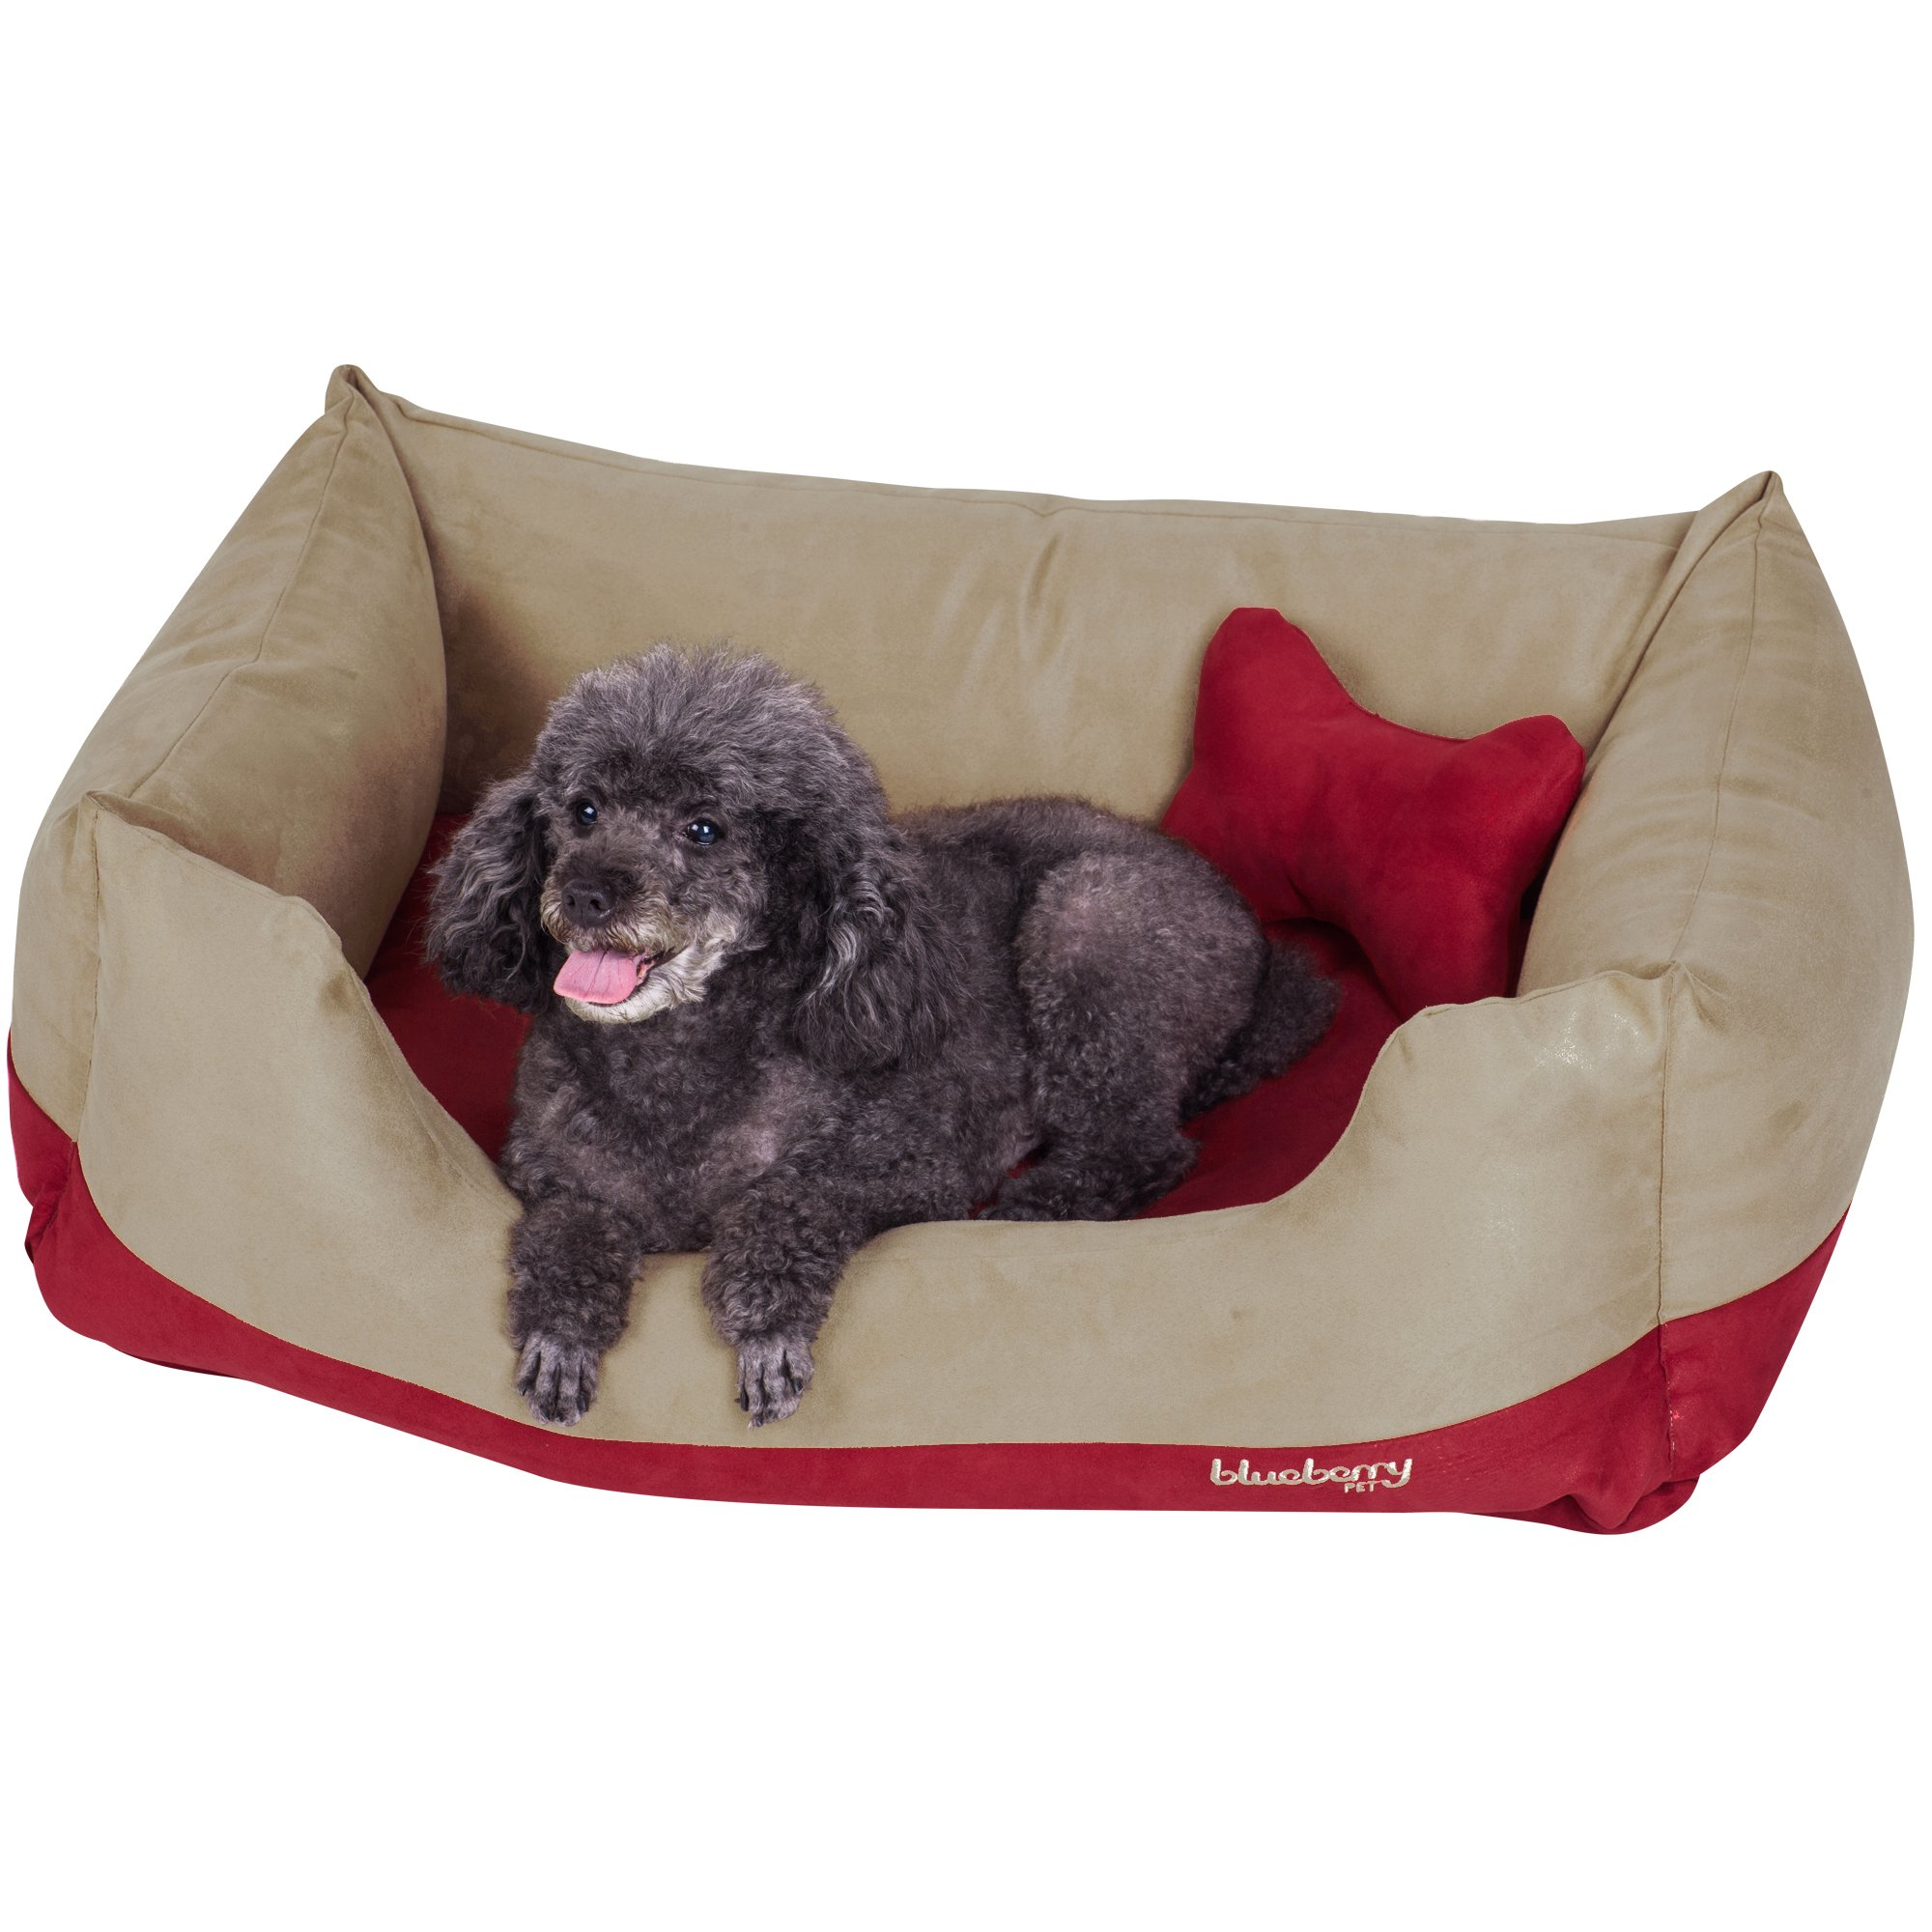 Blueberry Pet Heavy Duty Microsuede Overstuffed Bolster Lounge Dog Bed, Removable & Washable Cover w/YKK Zippers, 34'' x 24'' x 12'', 11 Lbs, Beige and Red Color-Block Beds for Cats & Dogs